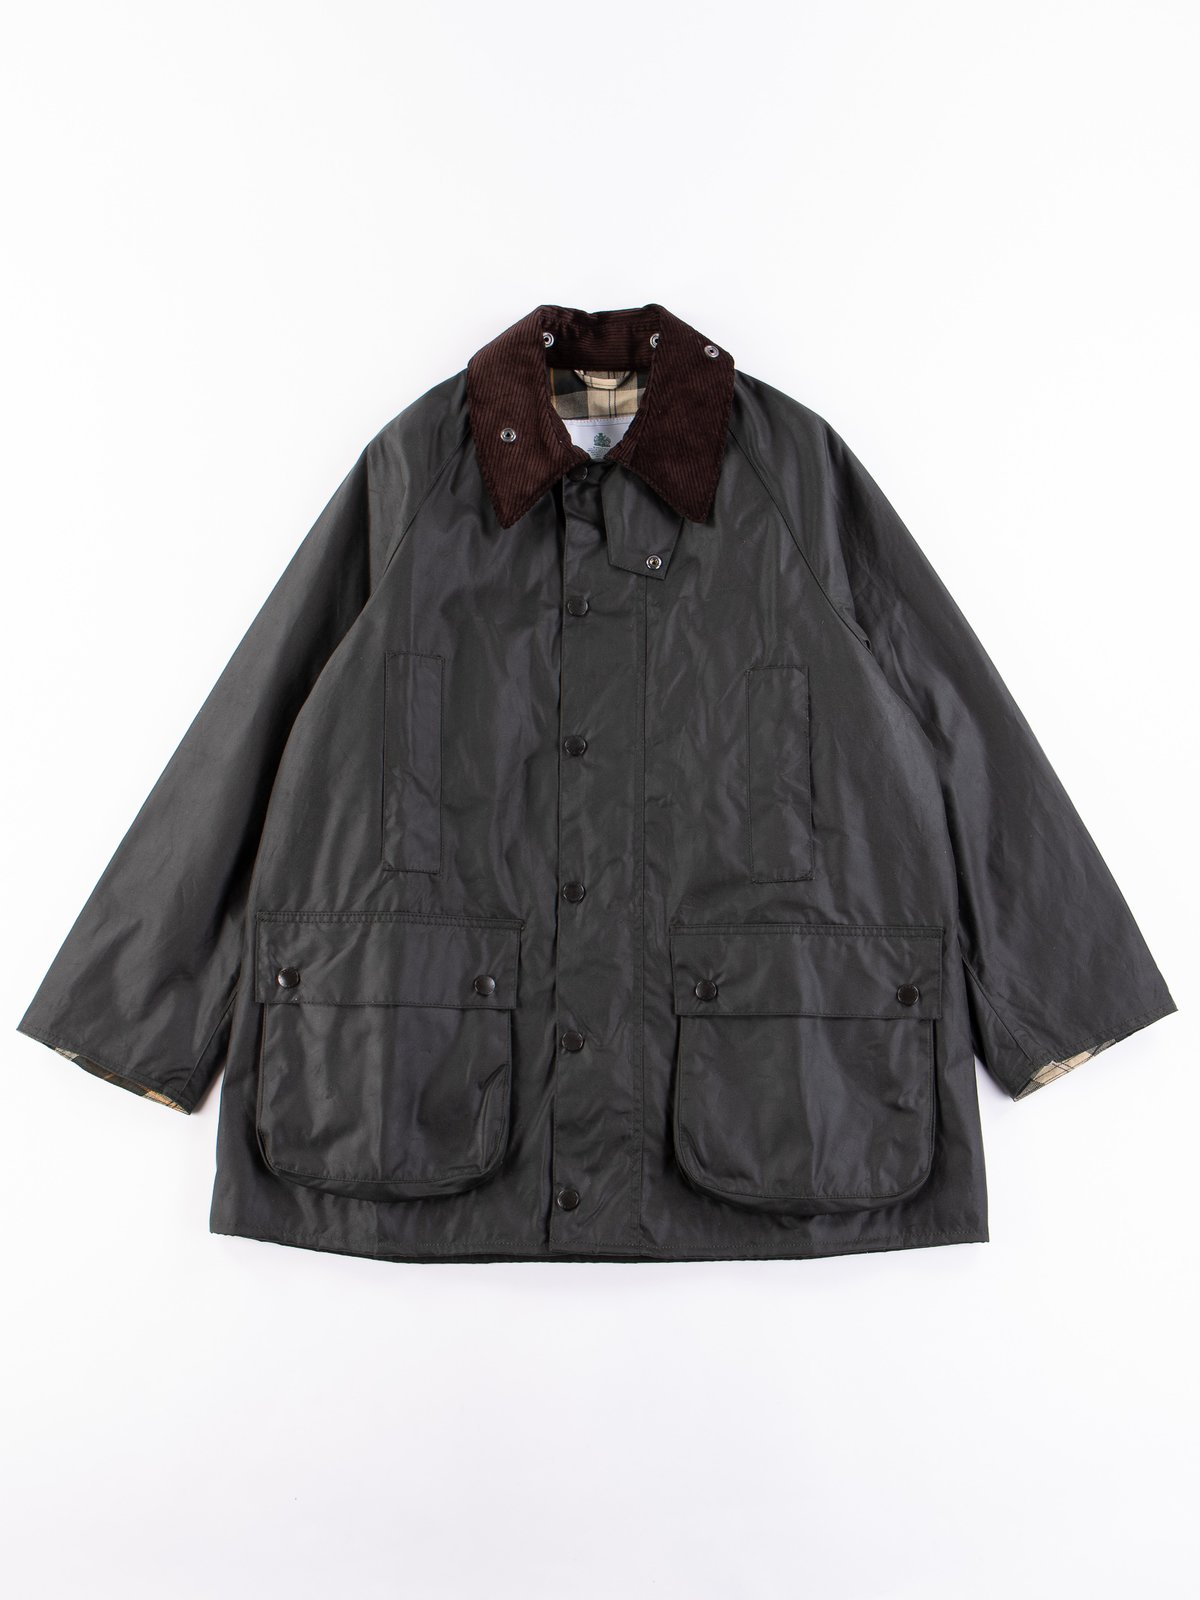 Sage Oversized Beaufort Waxed Cotton Jacket - Image 1